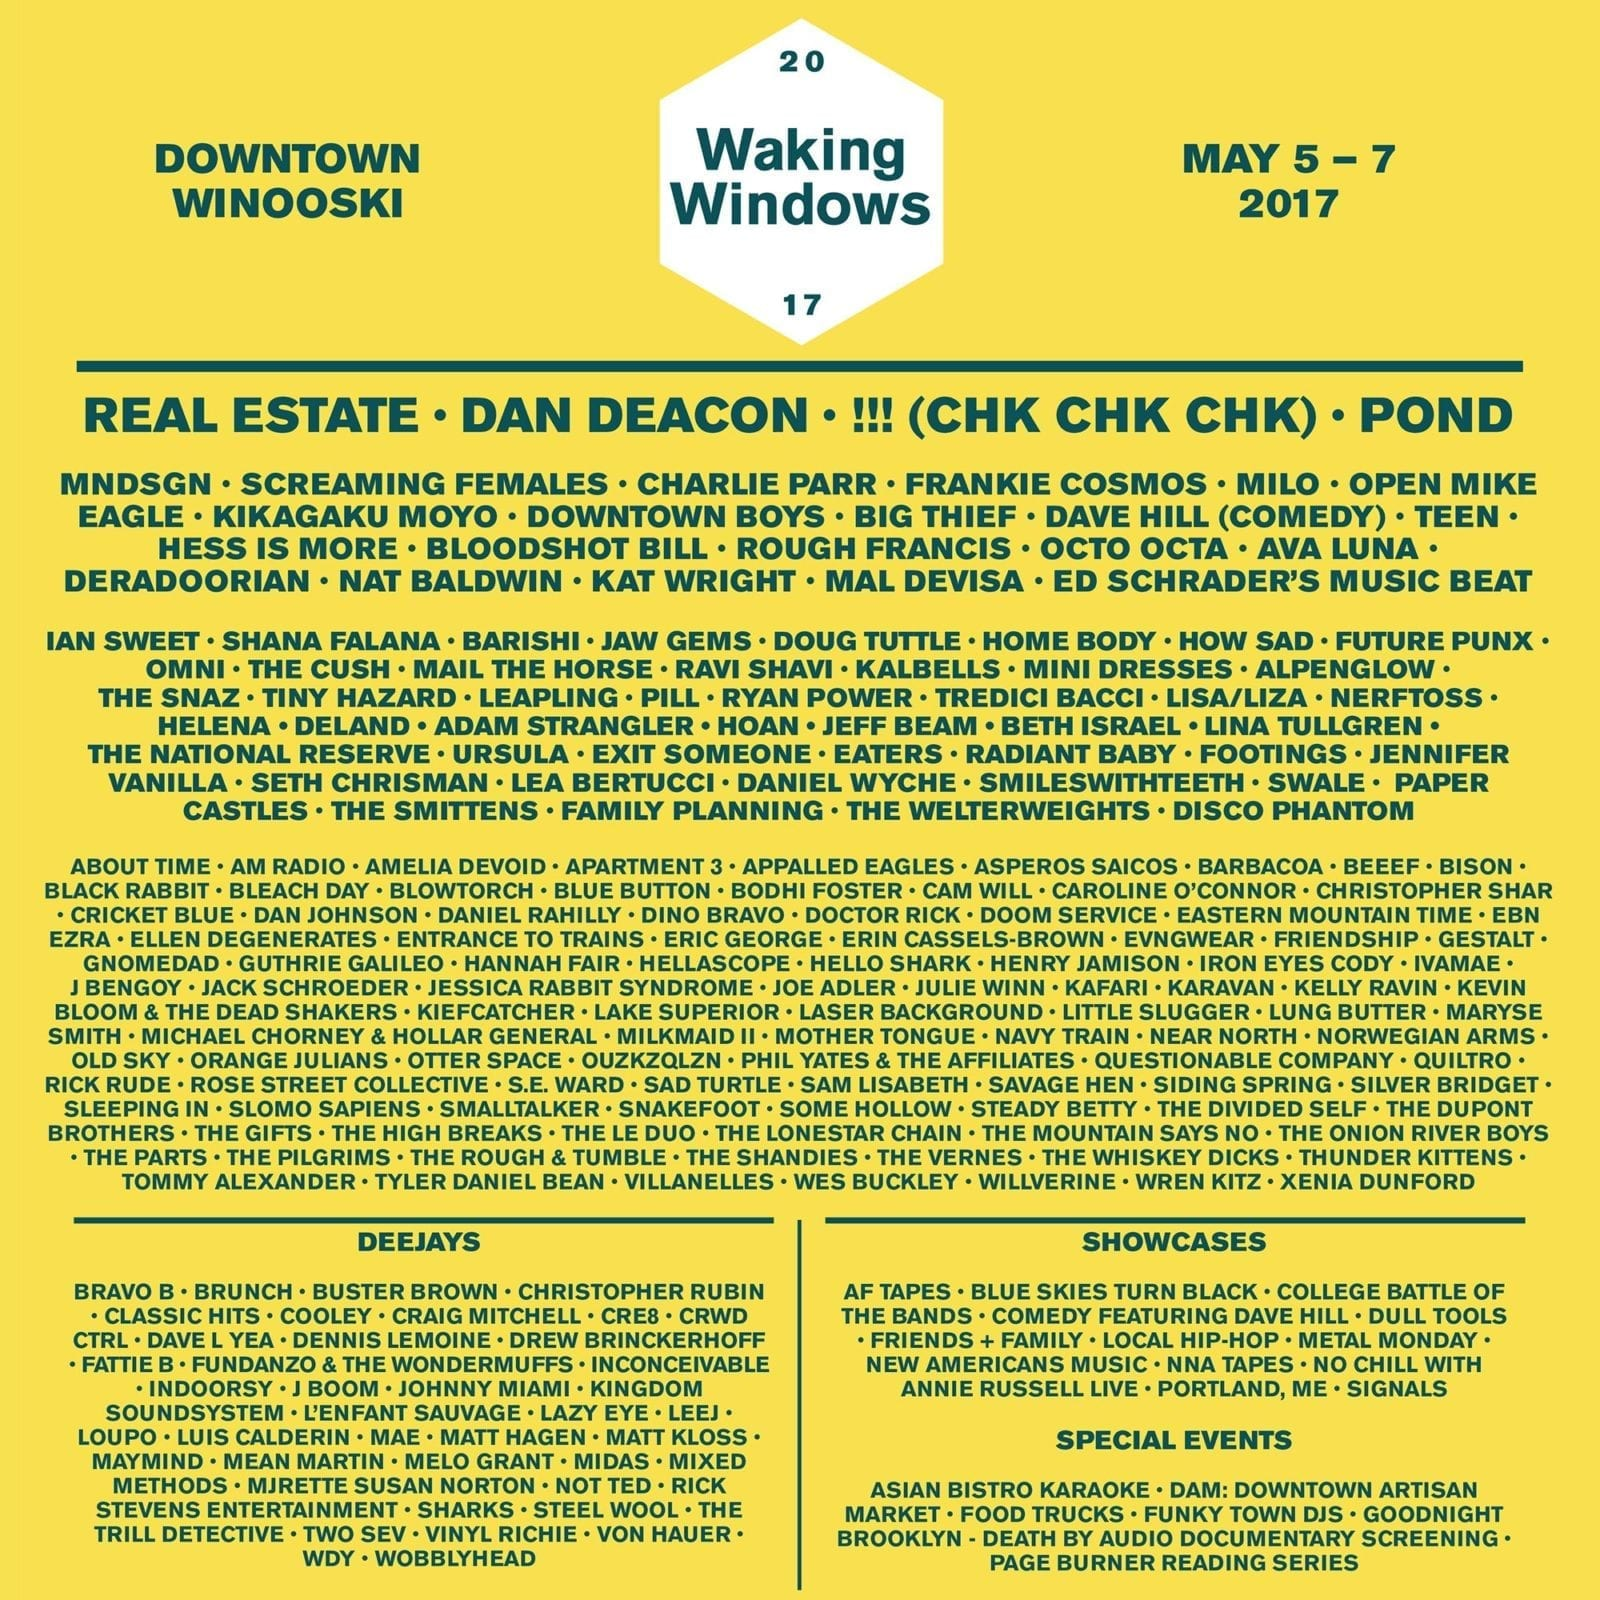 Waking Windows 2017 Festival Poster